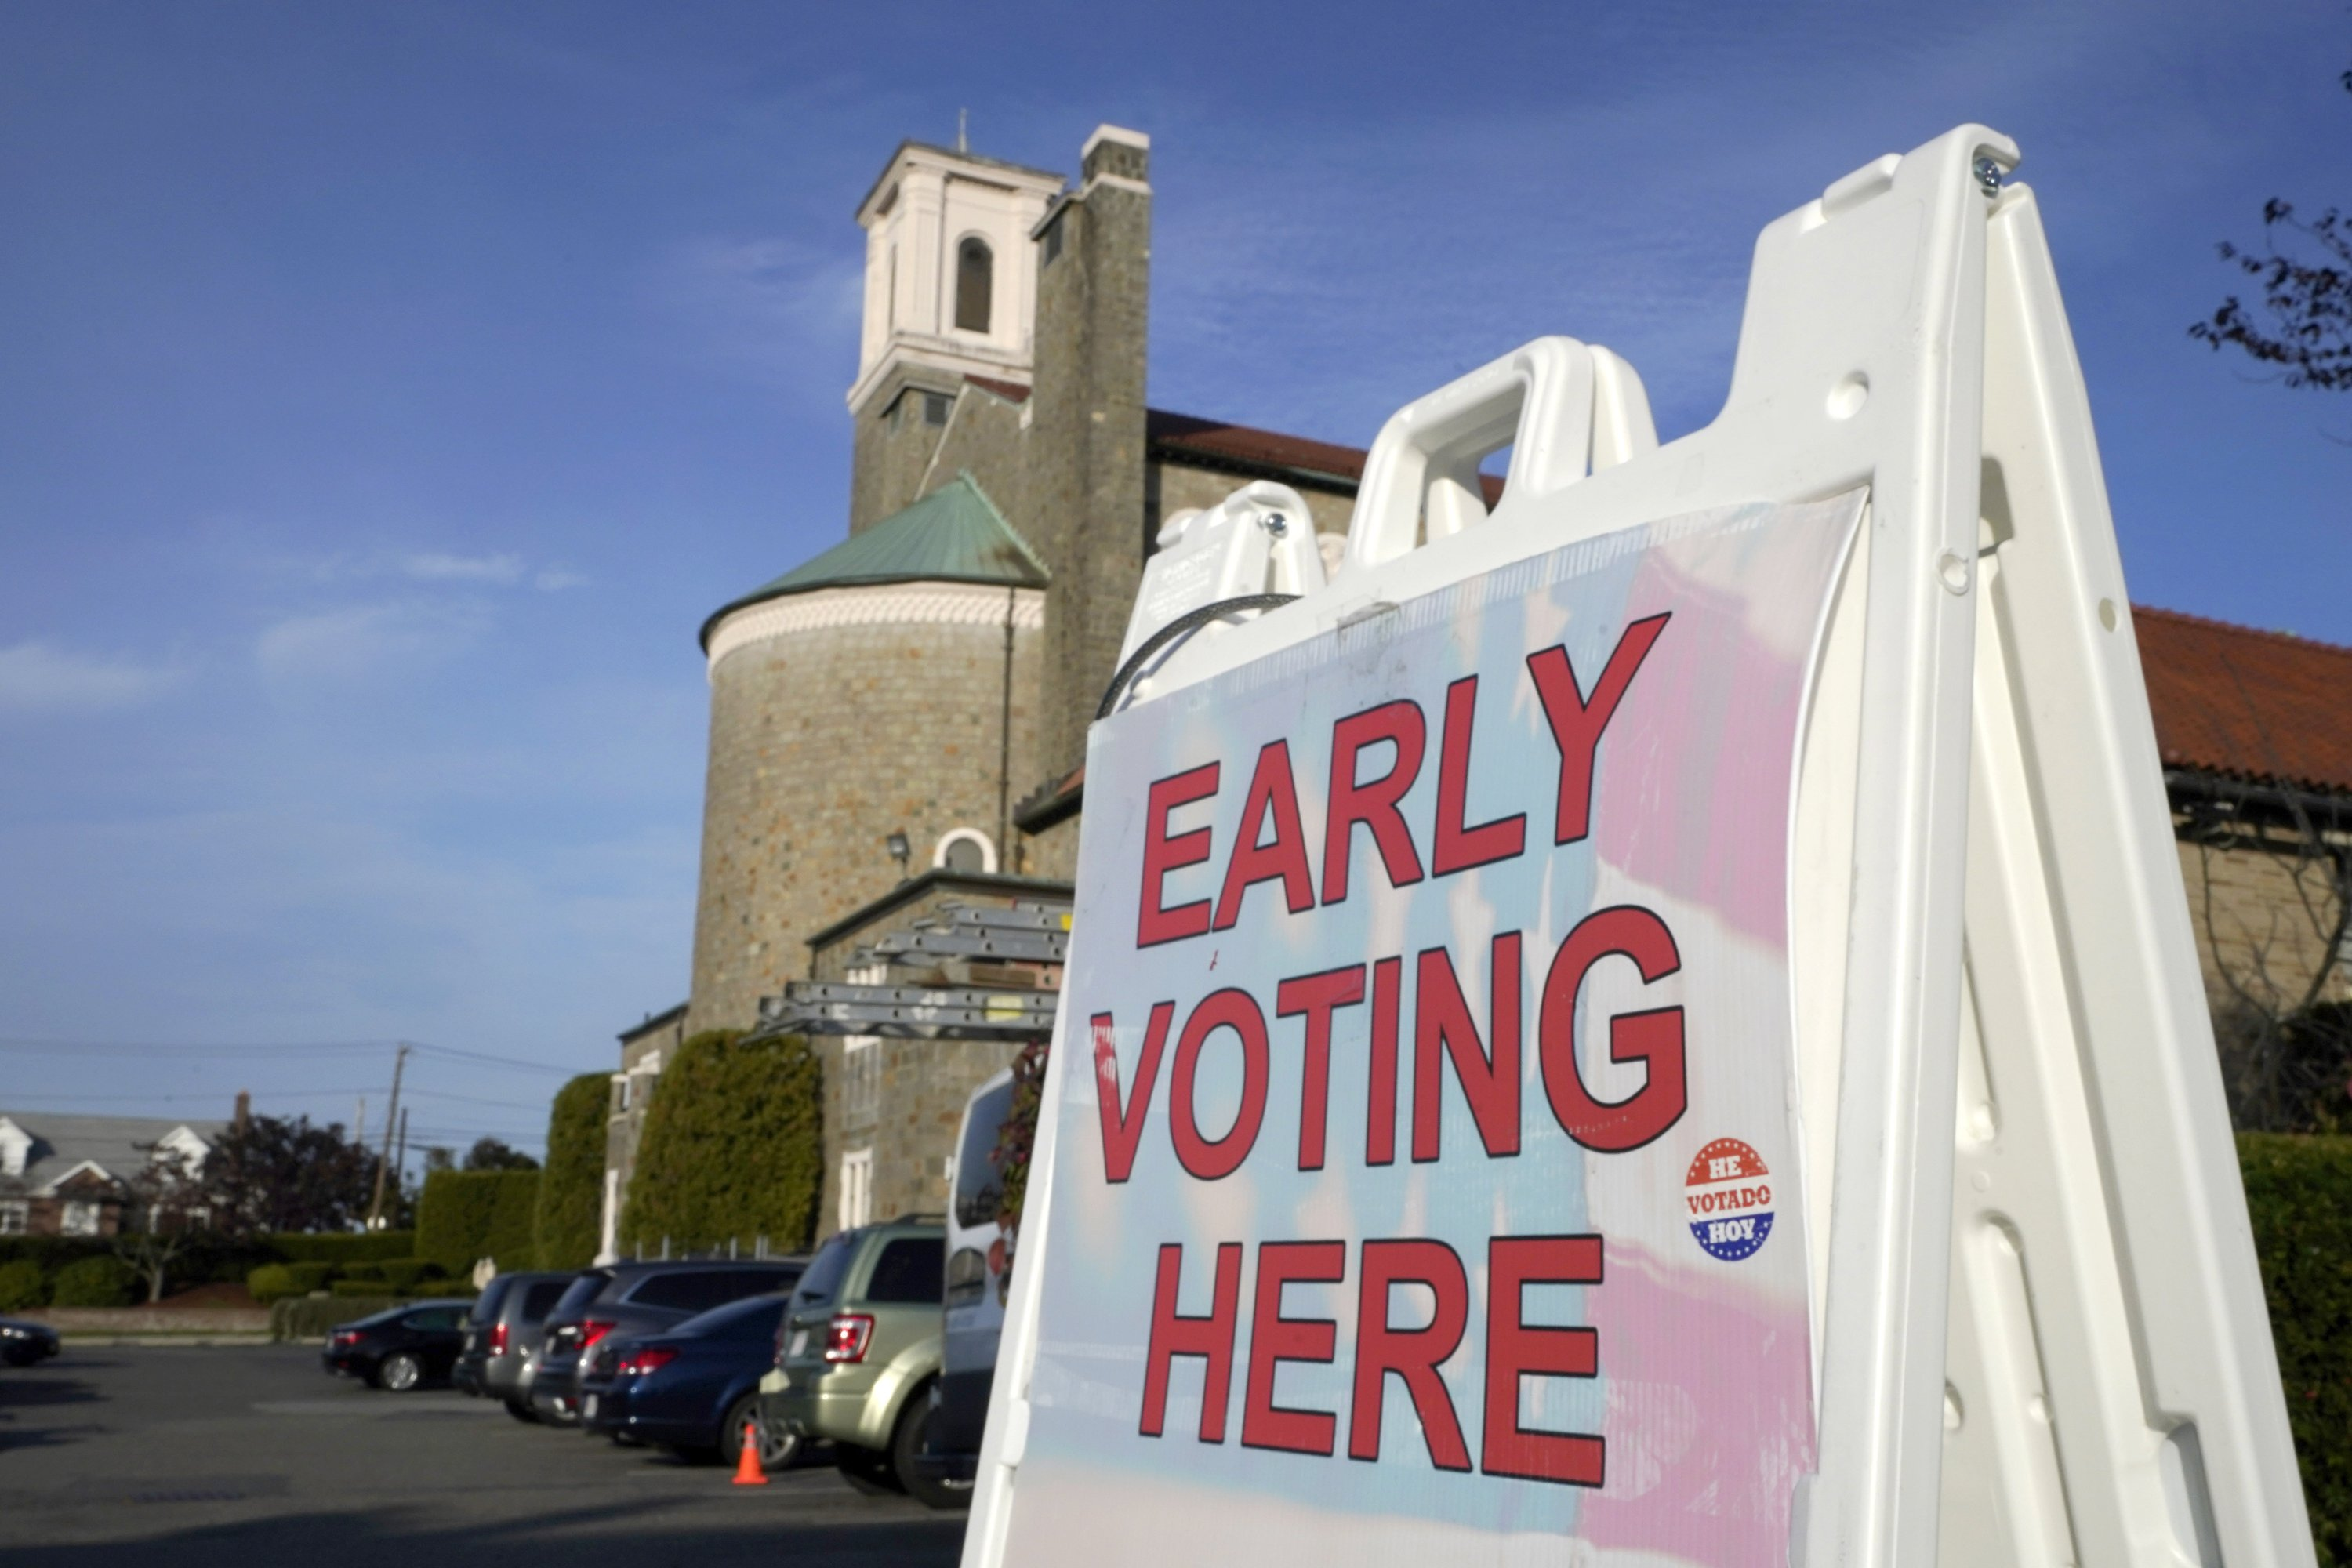 EXPLAINER: The unprecedented early voting, and what it means